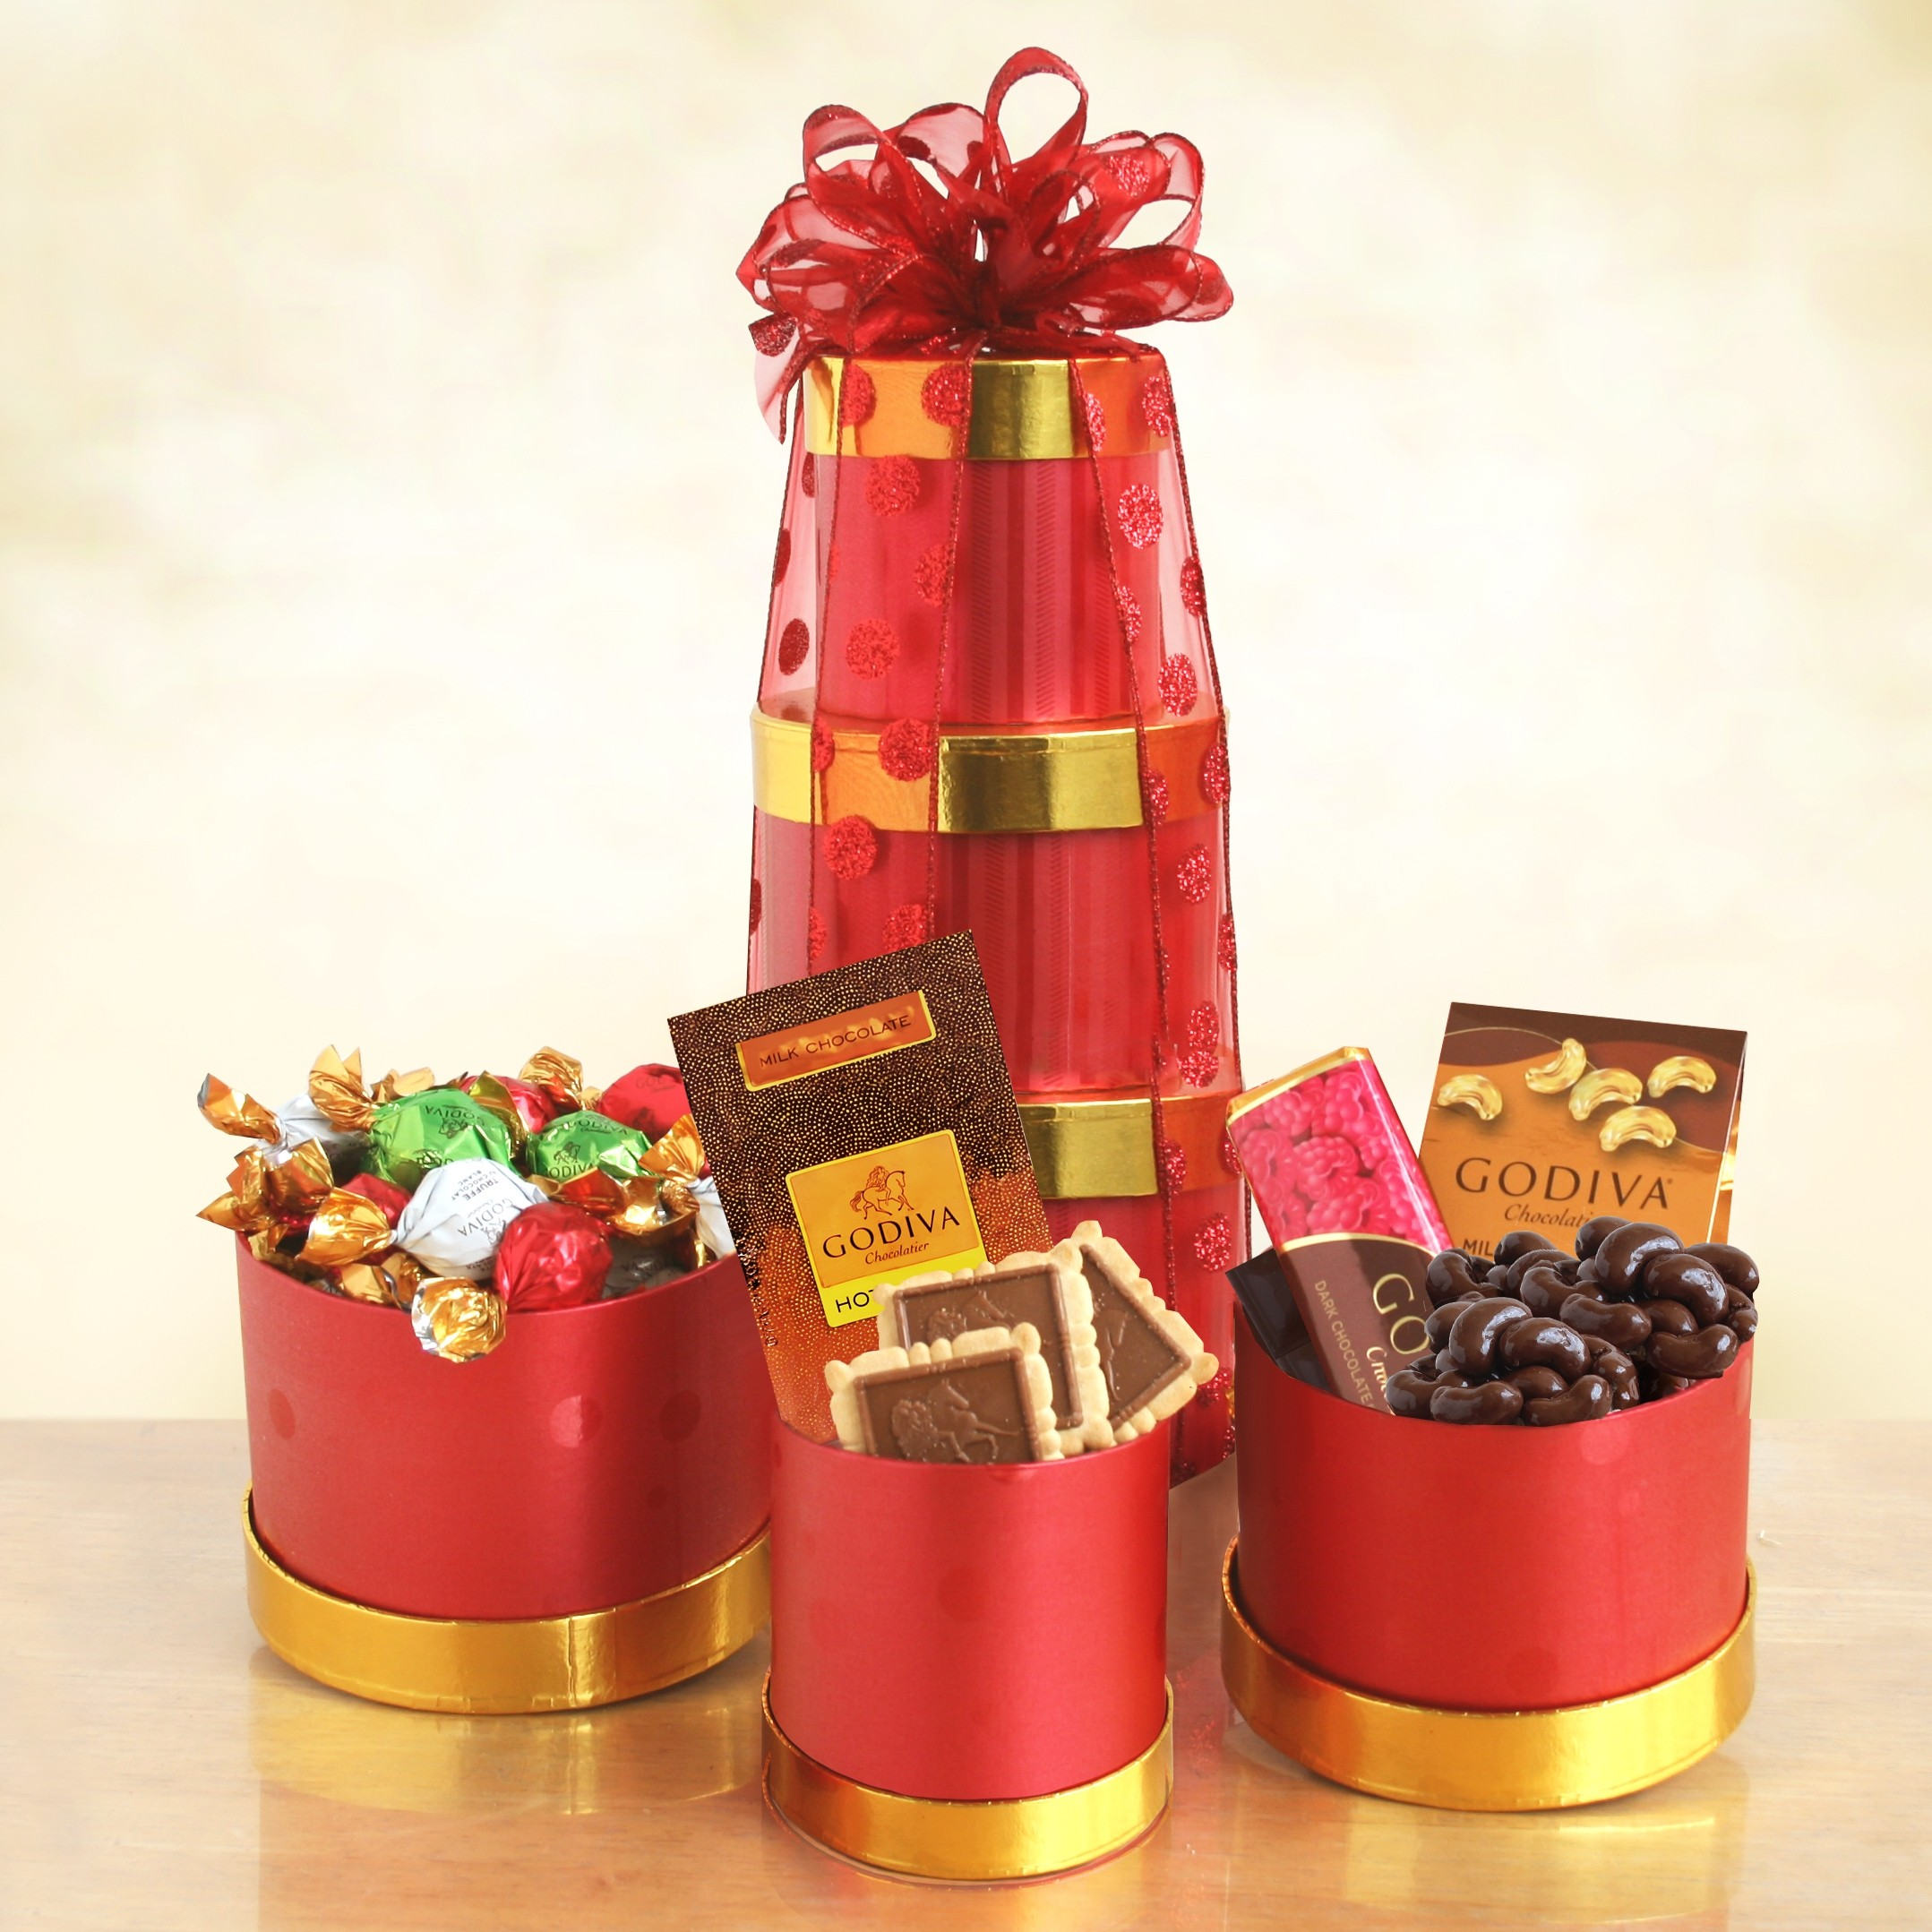 Godiva Winter Wishes Gift Tower